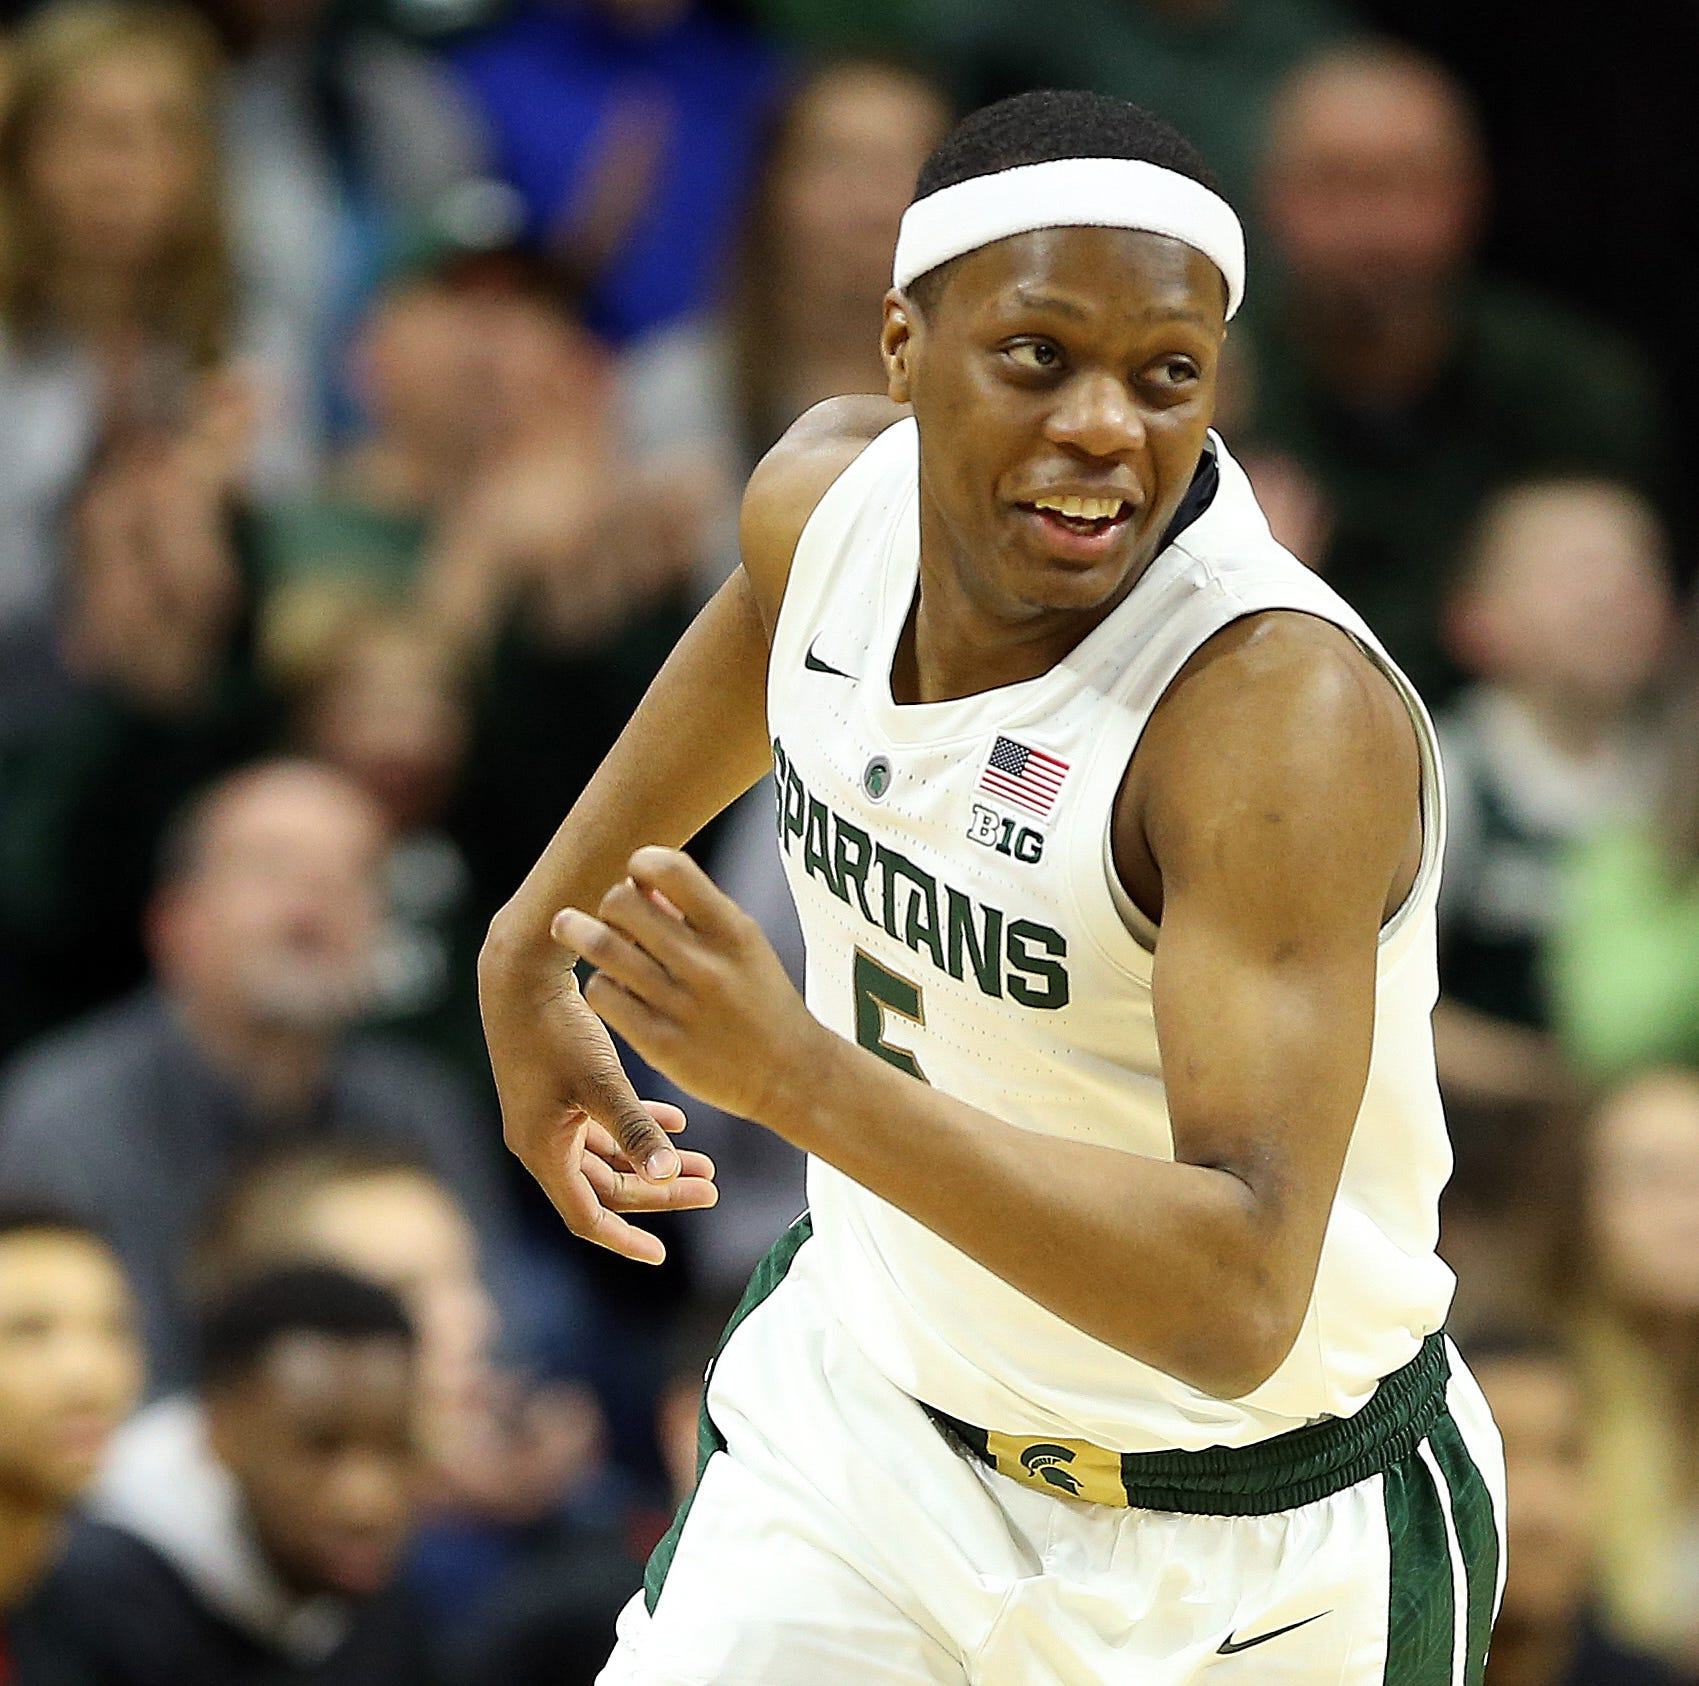 MSU's Cassius Winston named first-team midseason All-American by Sporting News